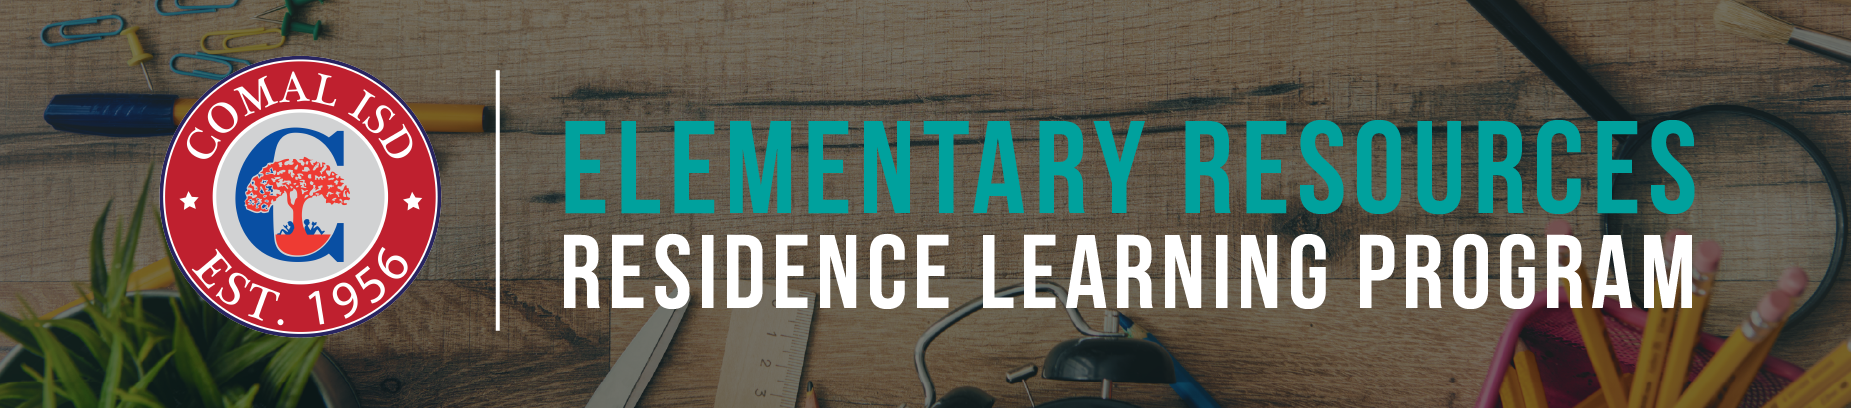 Elementary Resources Banner